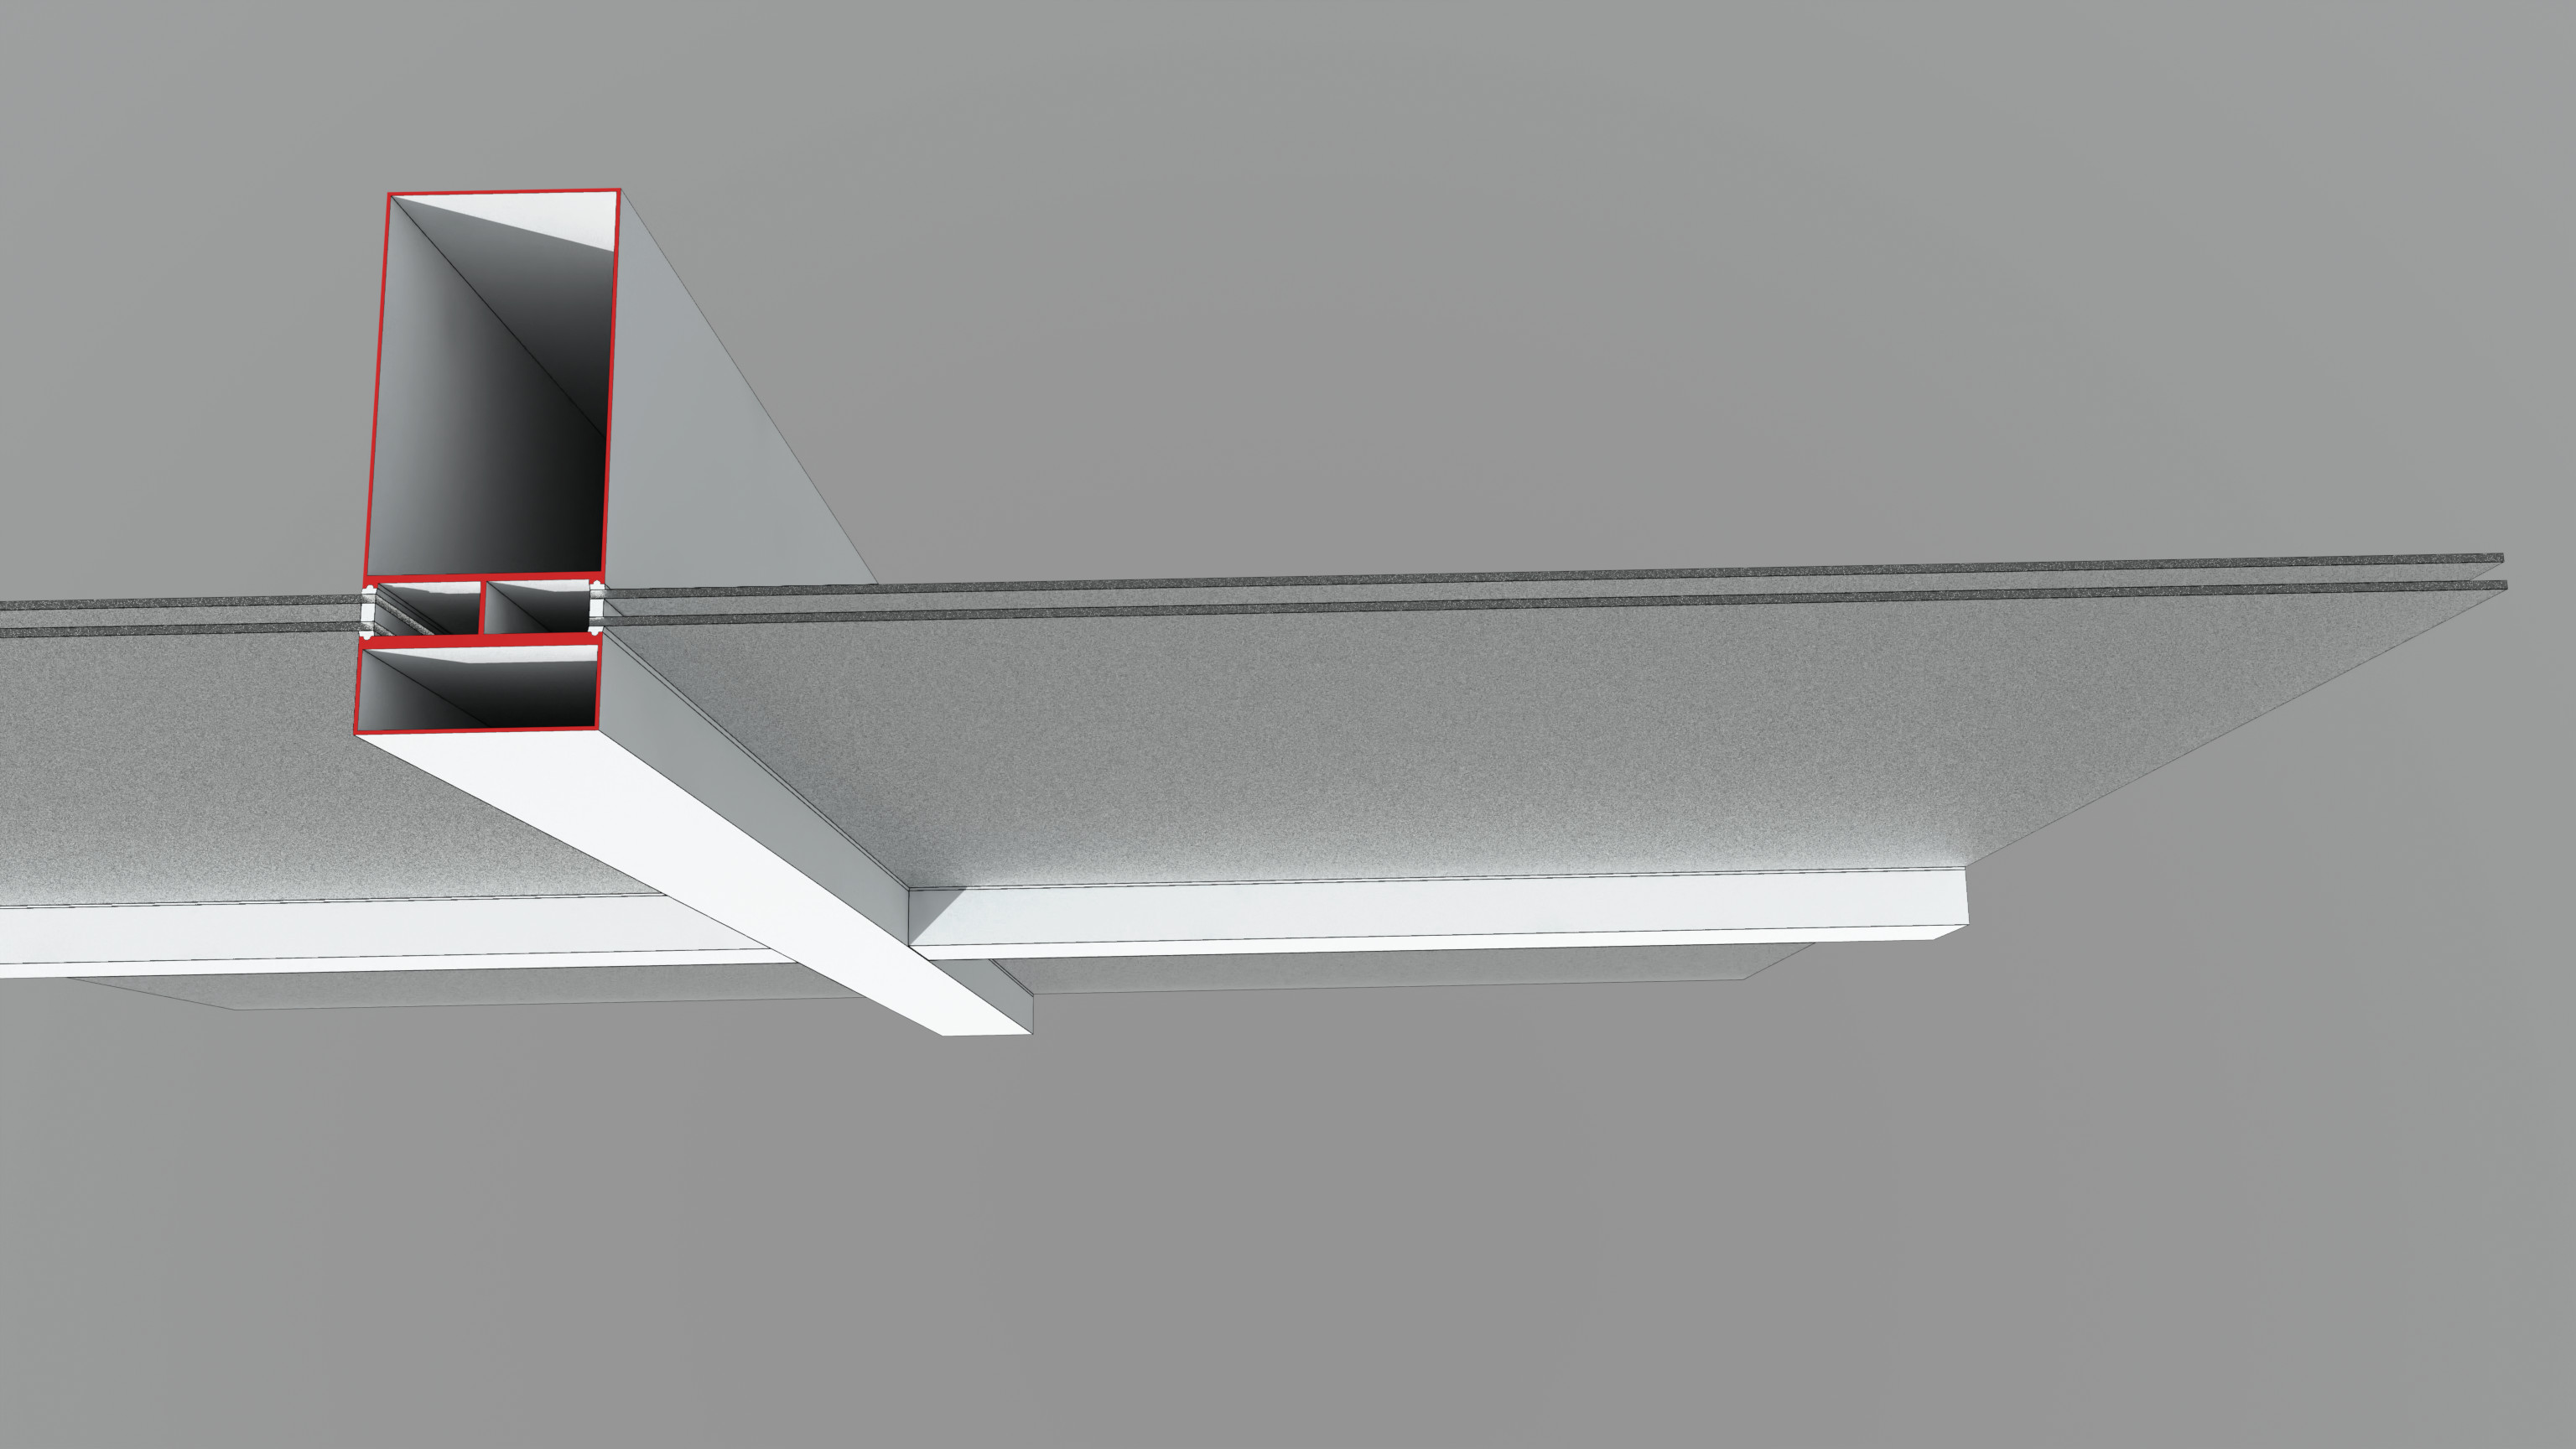 Façade system intersection with sectioned metal mullion profiles: cel-edge shader for clarity